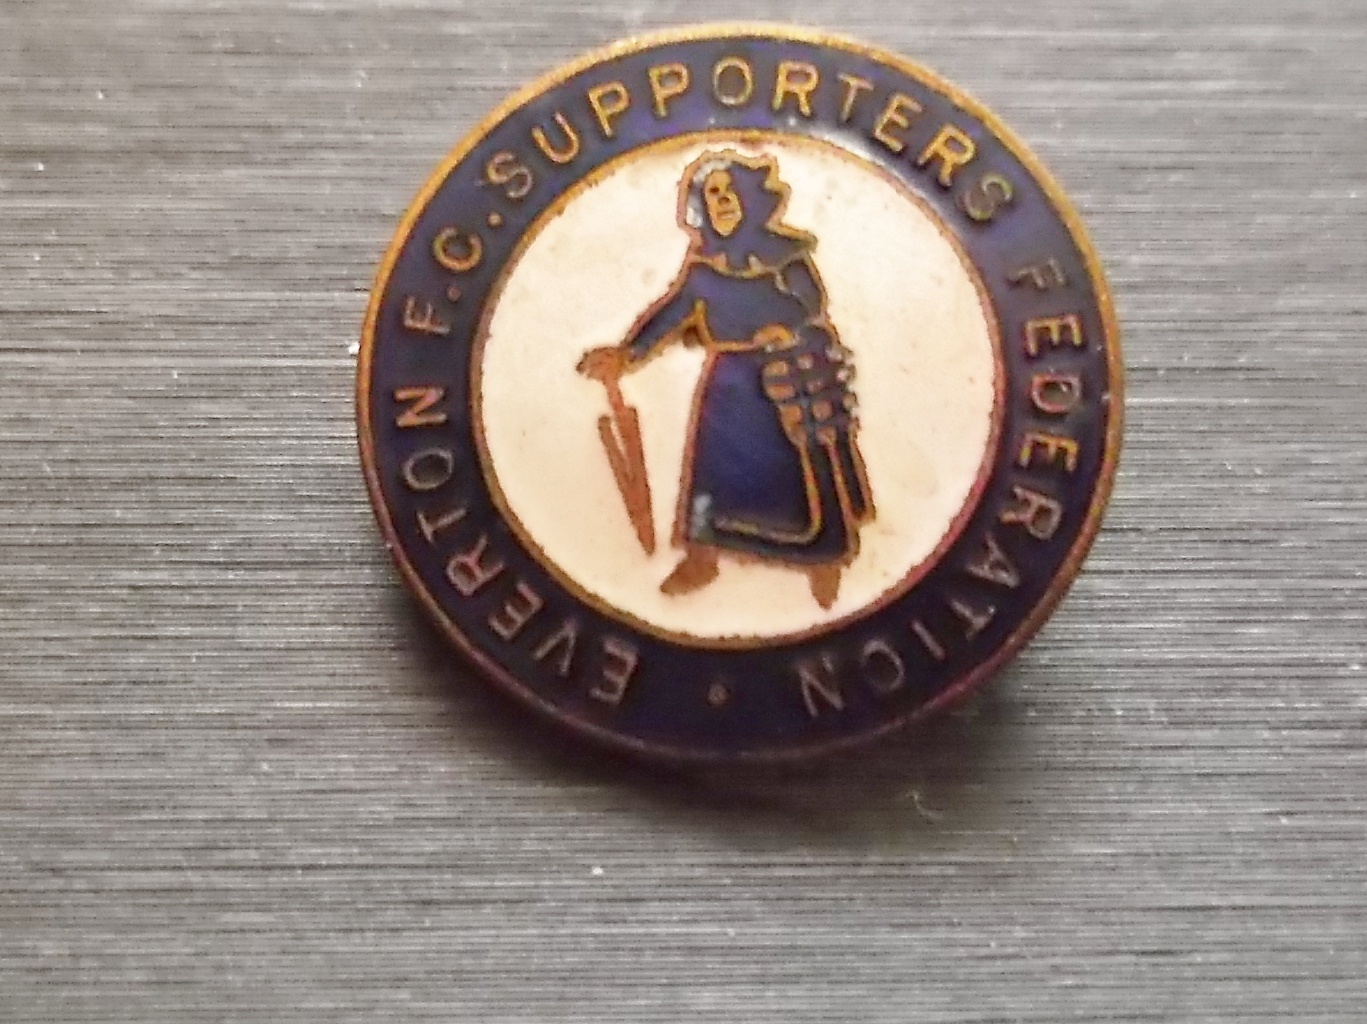 EVERTON - VINTAGE SUPPORTERS FEDERATION BADGE